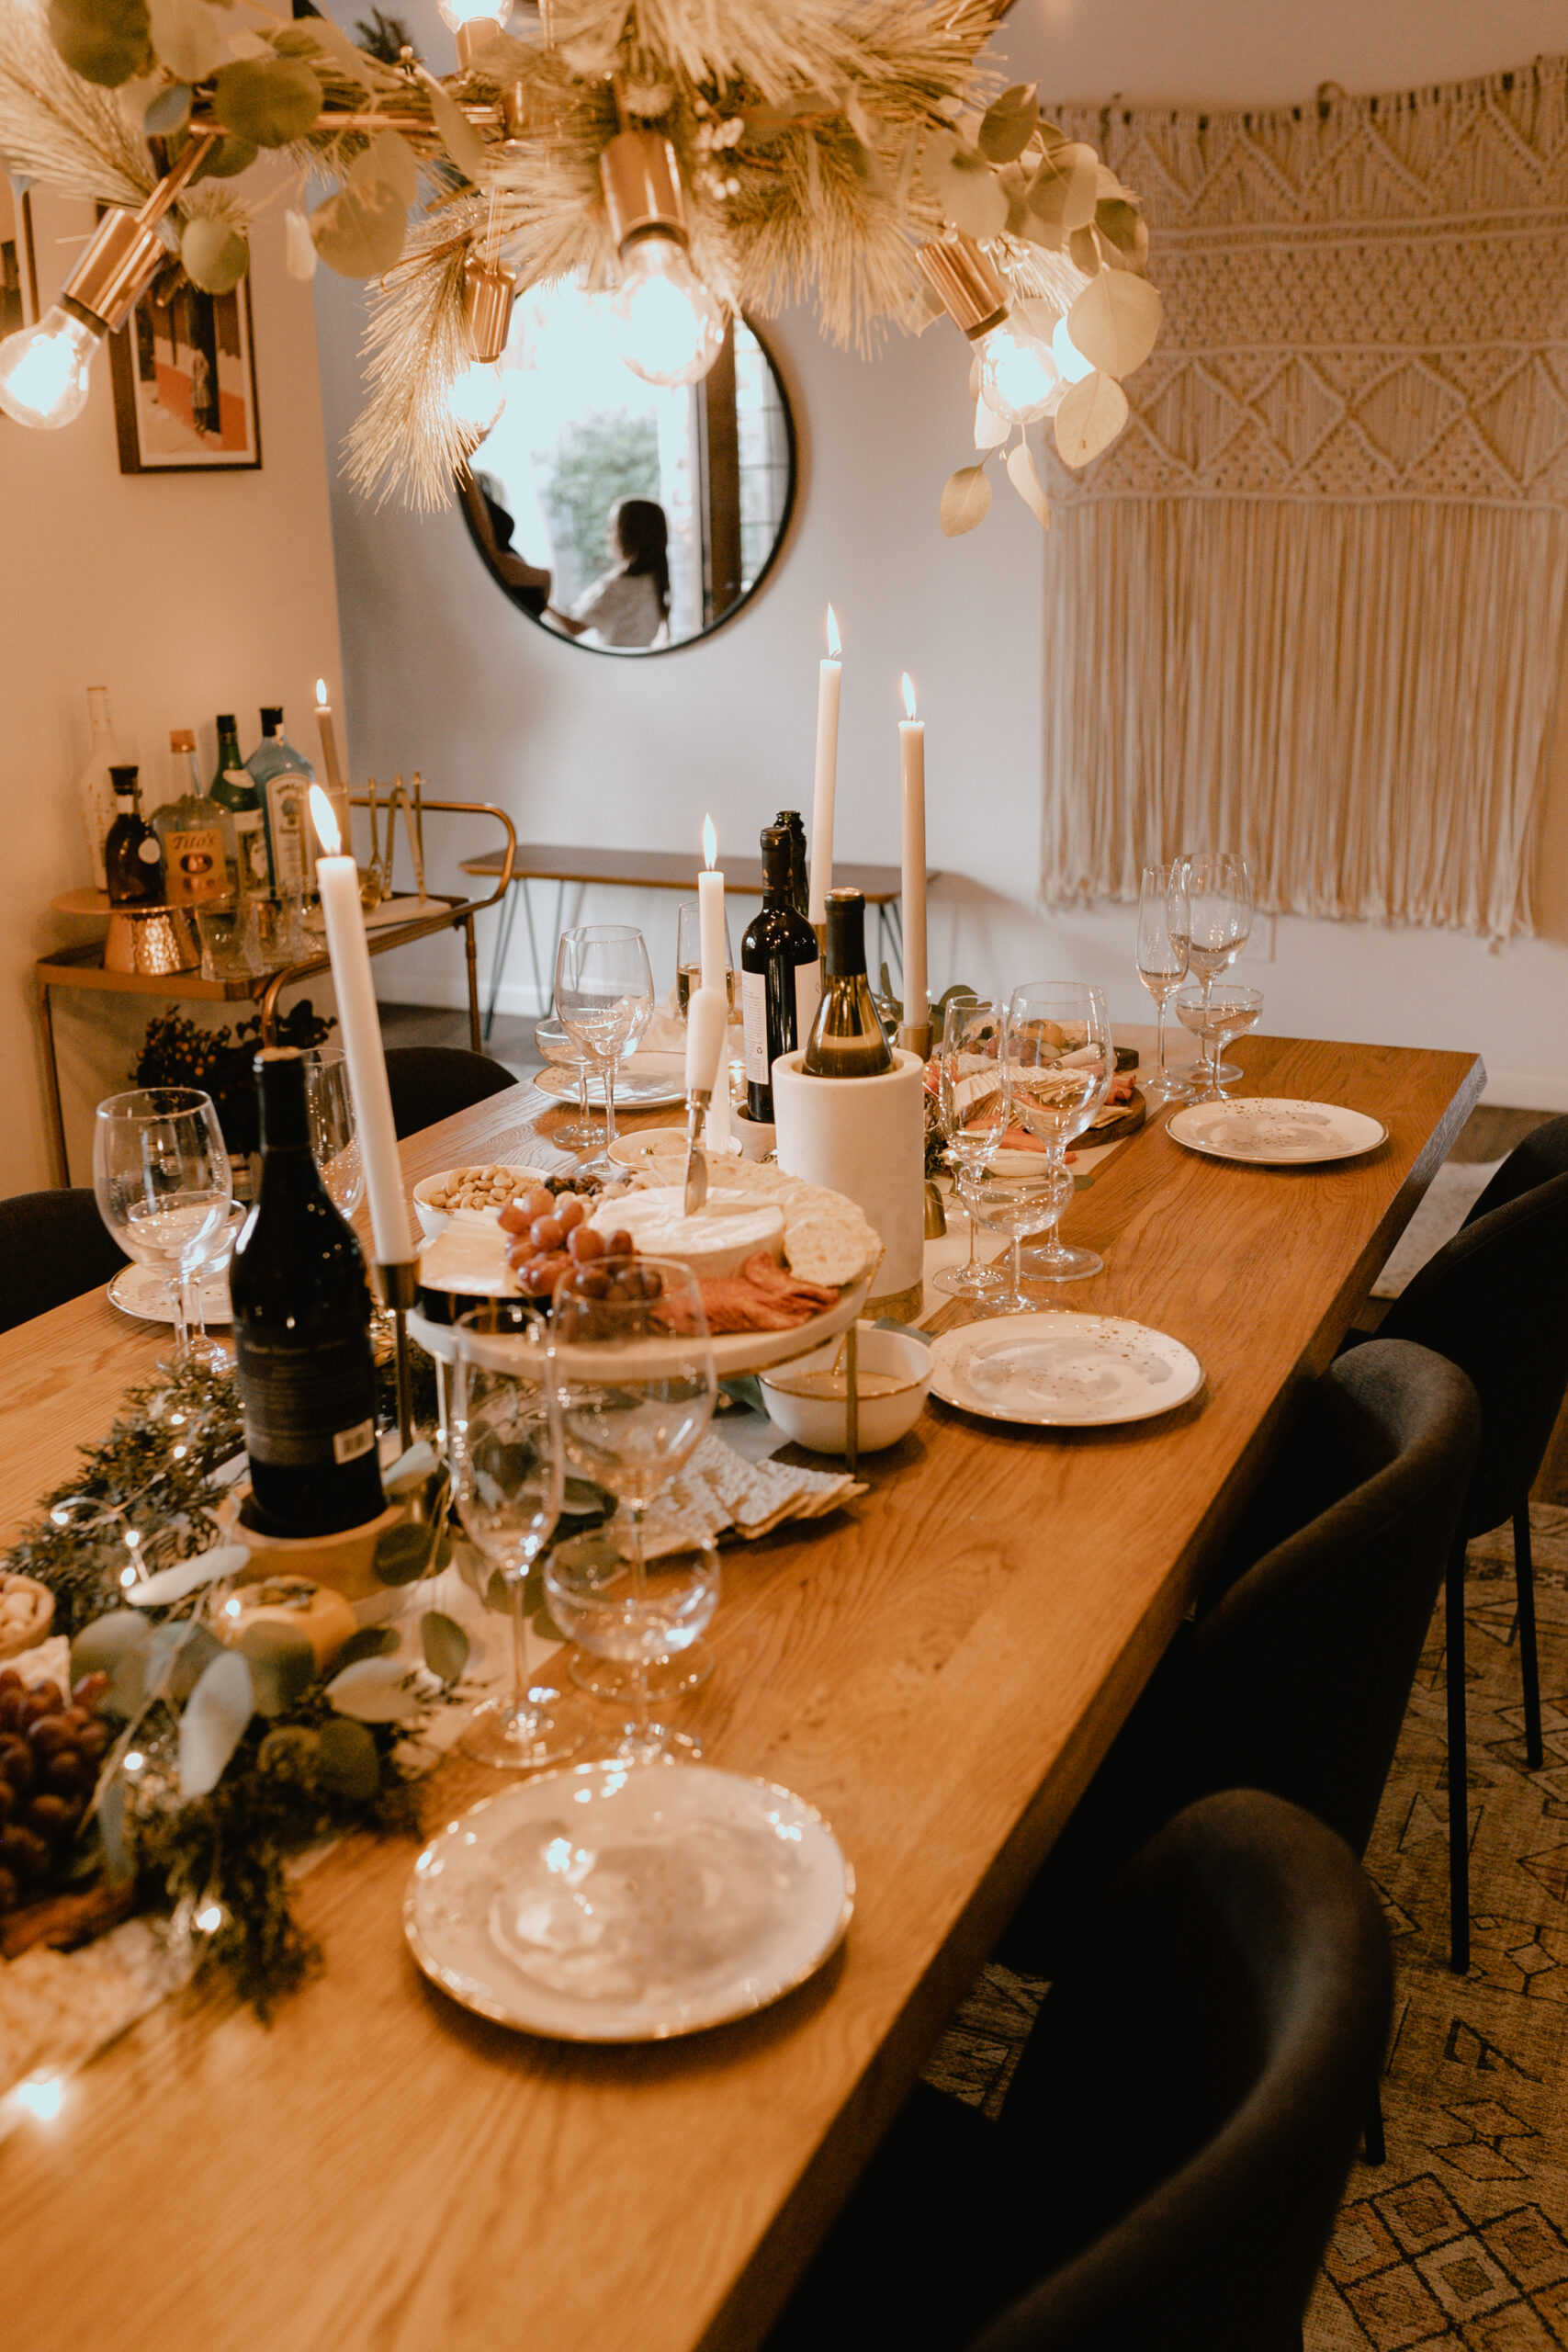 the table is set and ready for our guests to arrive! #happyholidays #holidayparty #christmasparty #holidayhome